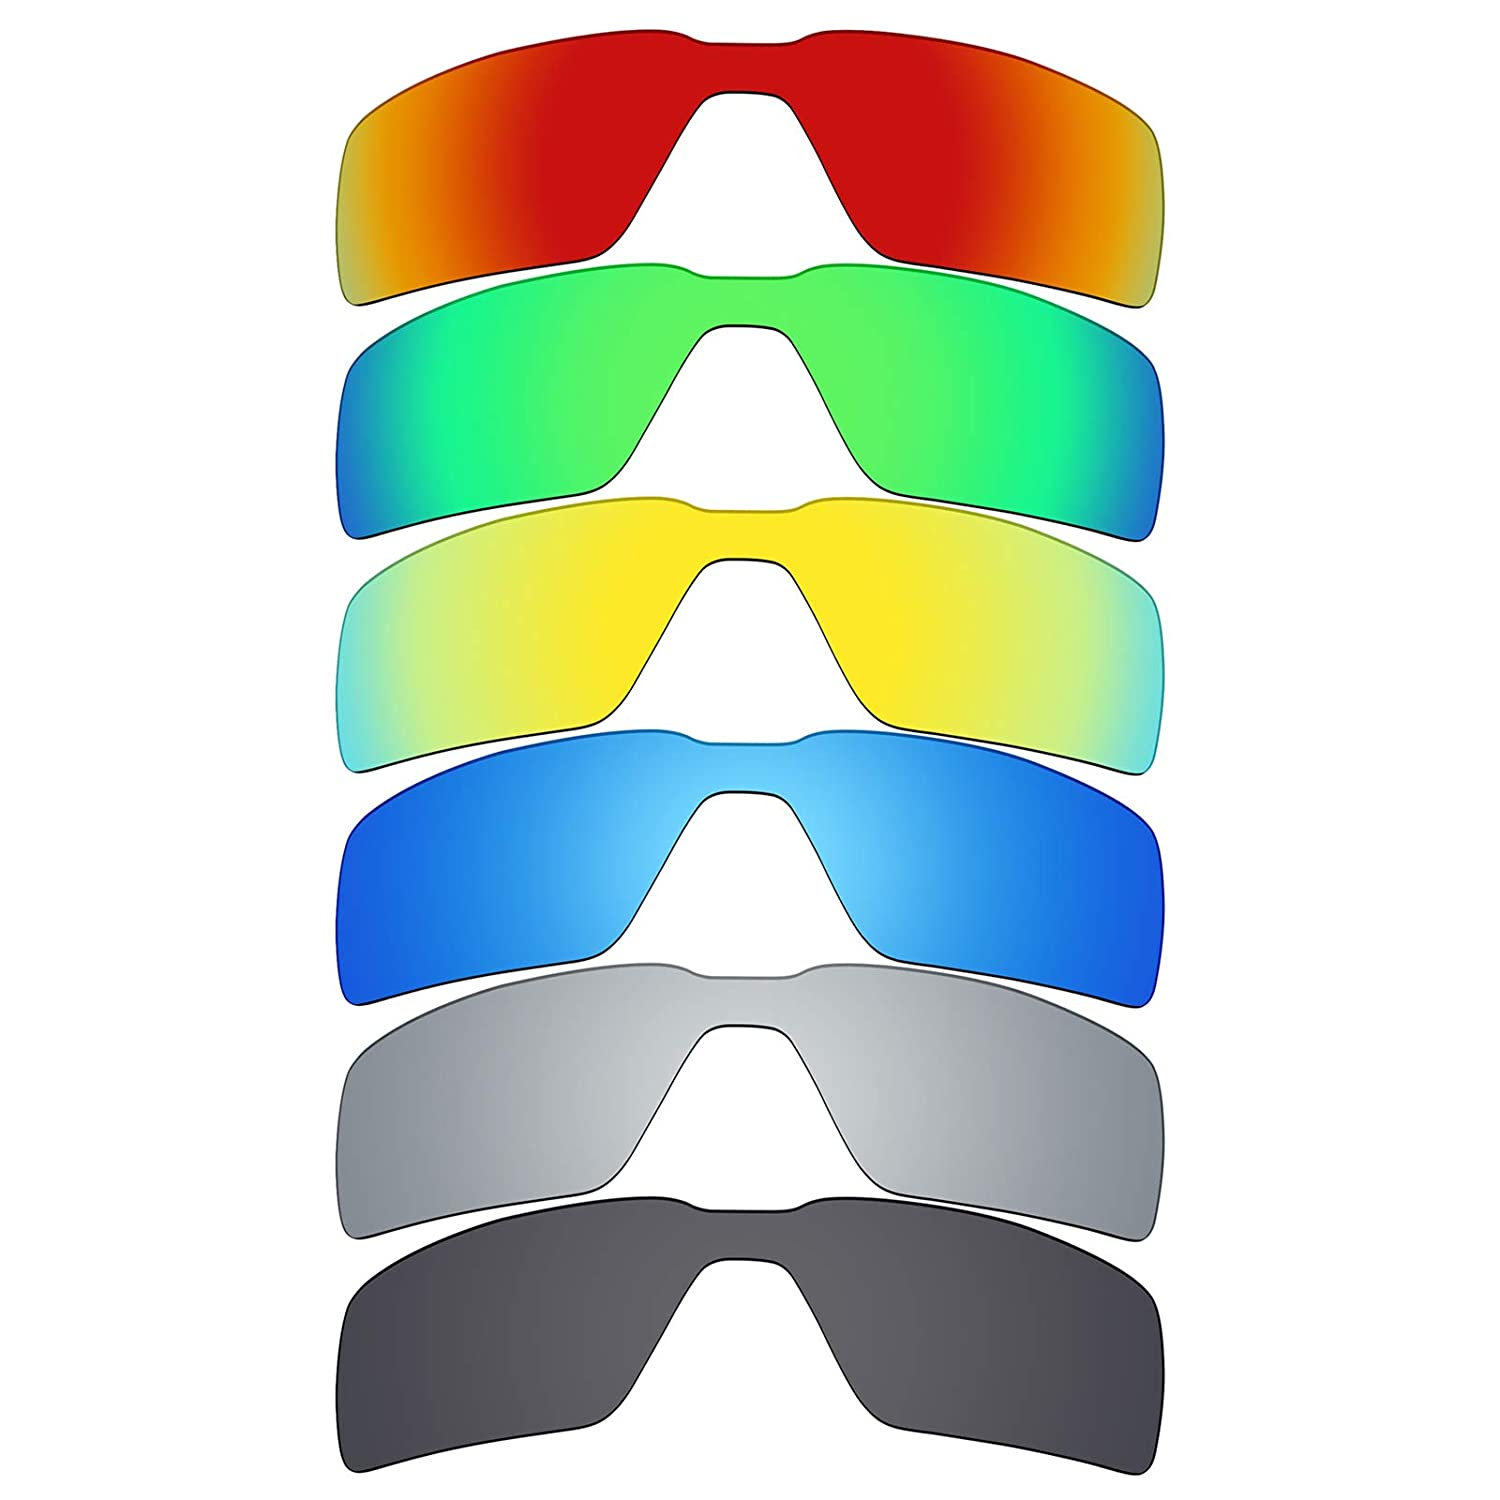 2357eee3d509f Amazon.com   Mryok 6 Pair Polarized Replacement Lenses for Oakley Probation  Sunglass - Stealth Black Fire Red Ice Blue Silver Titanium Emerald  Green 24K ...